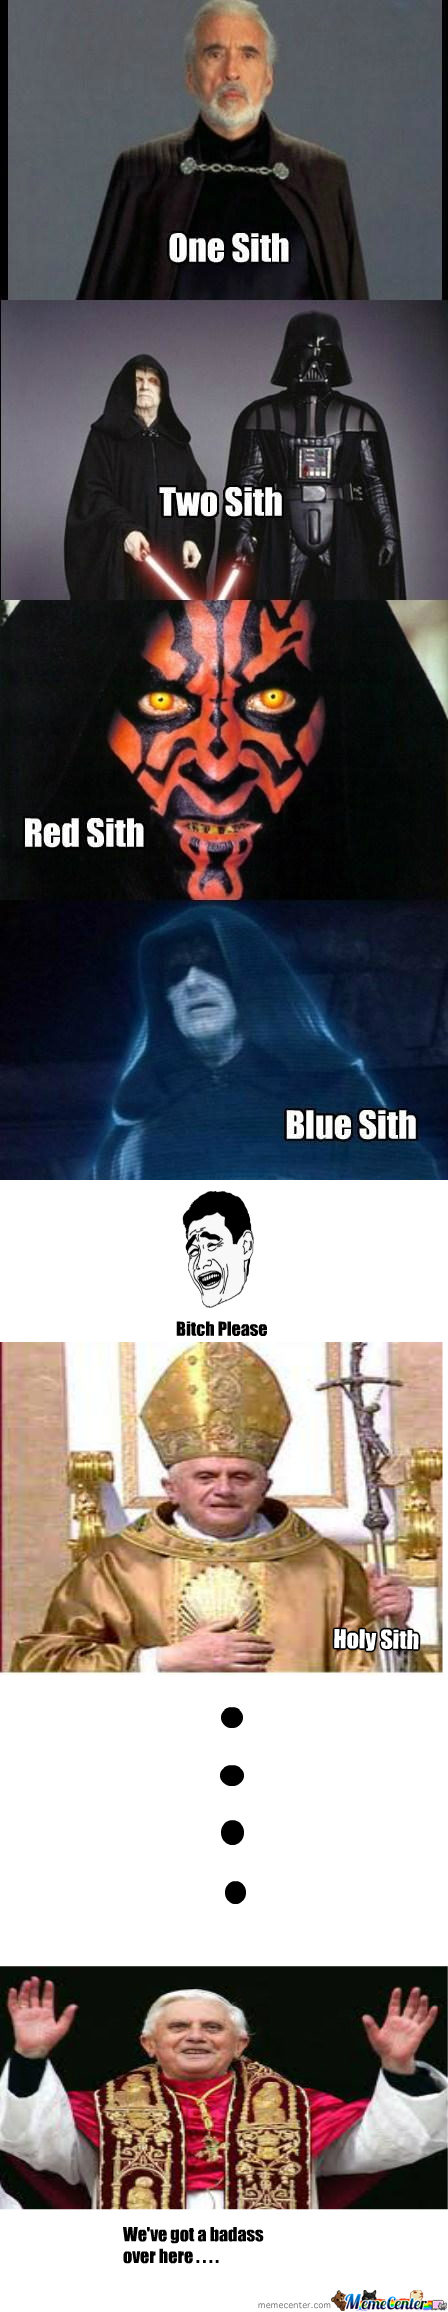 [RMX] One Sith, Two Sith, Red Sith, Blue Sith